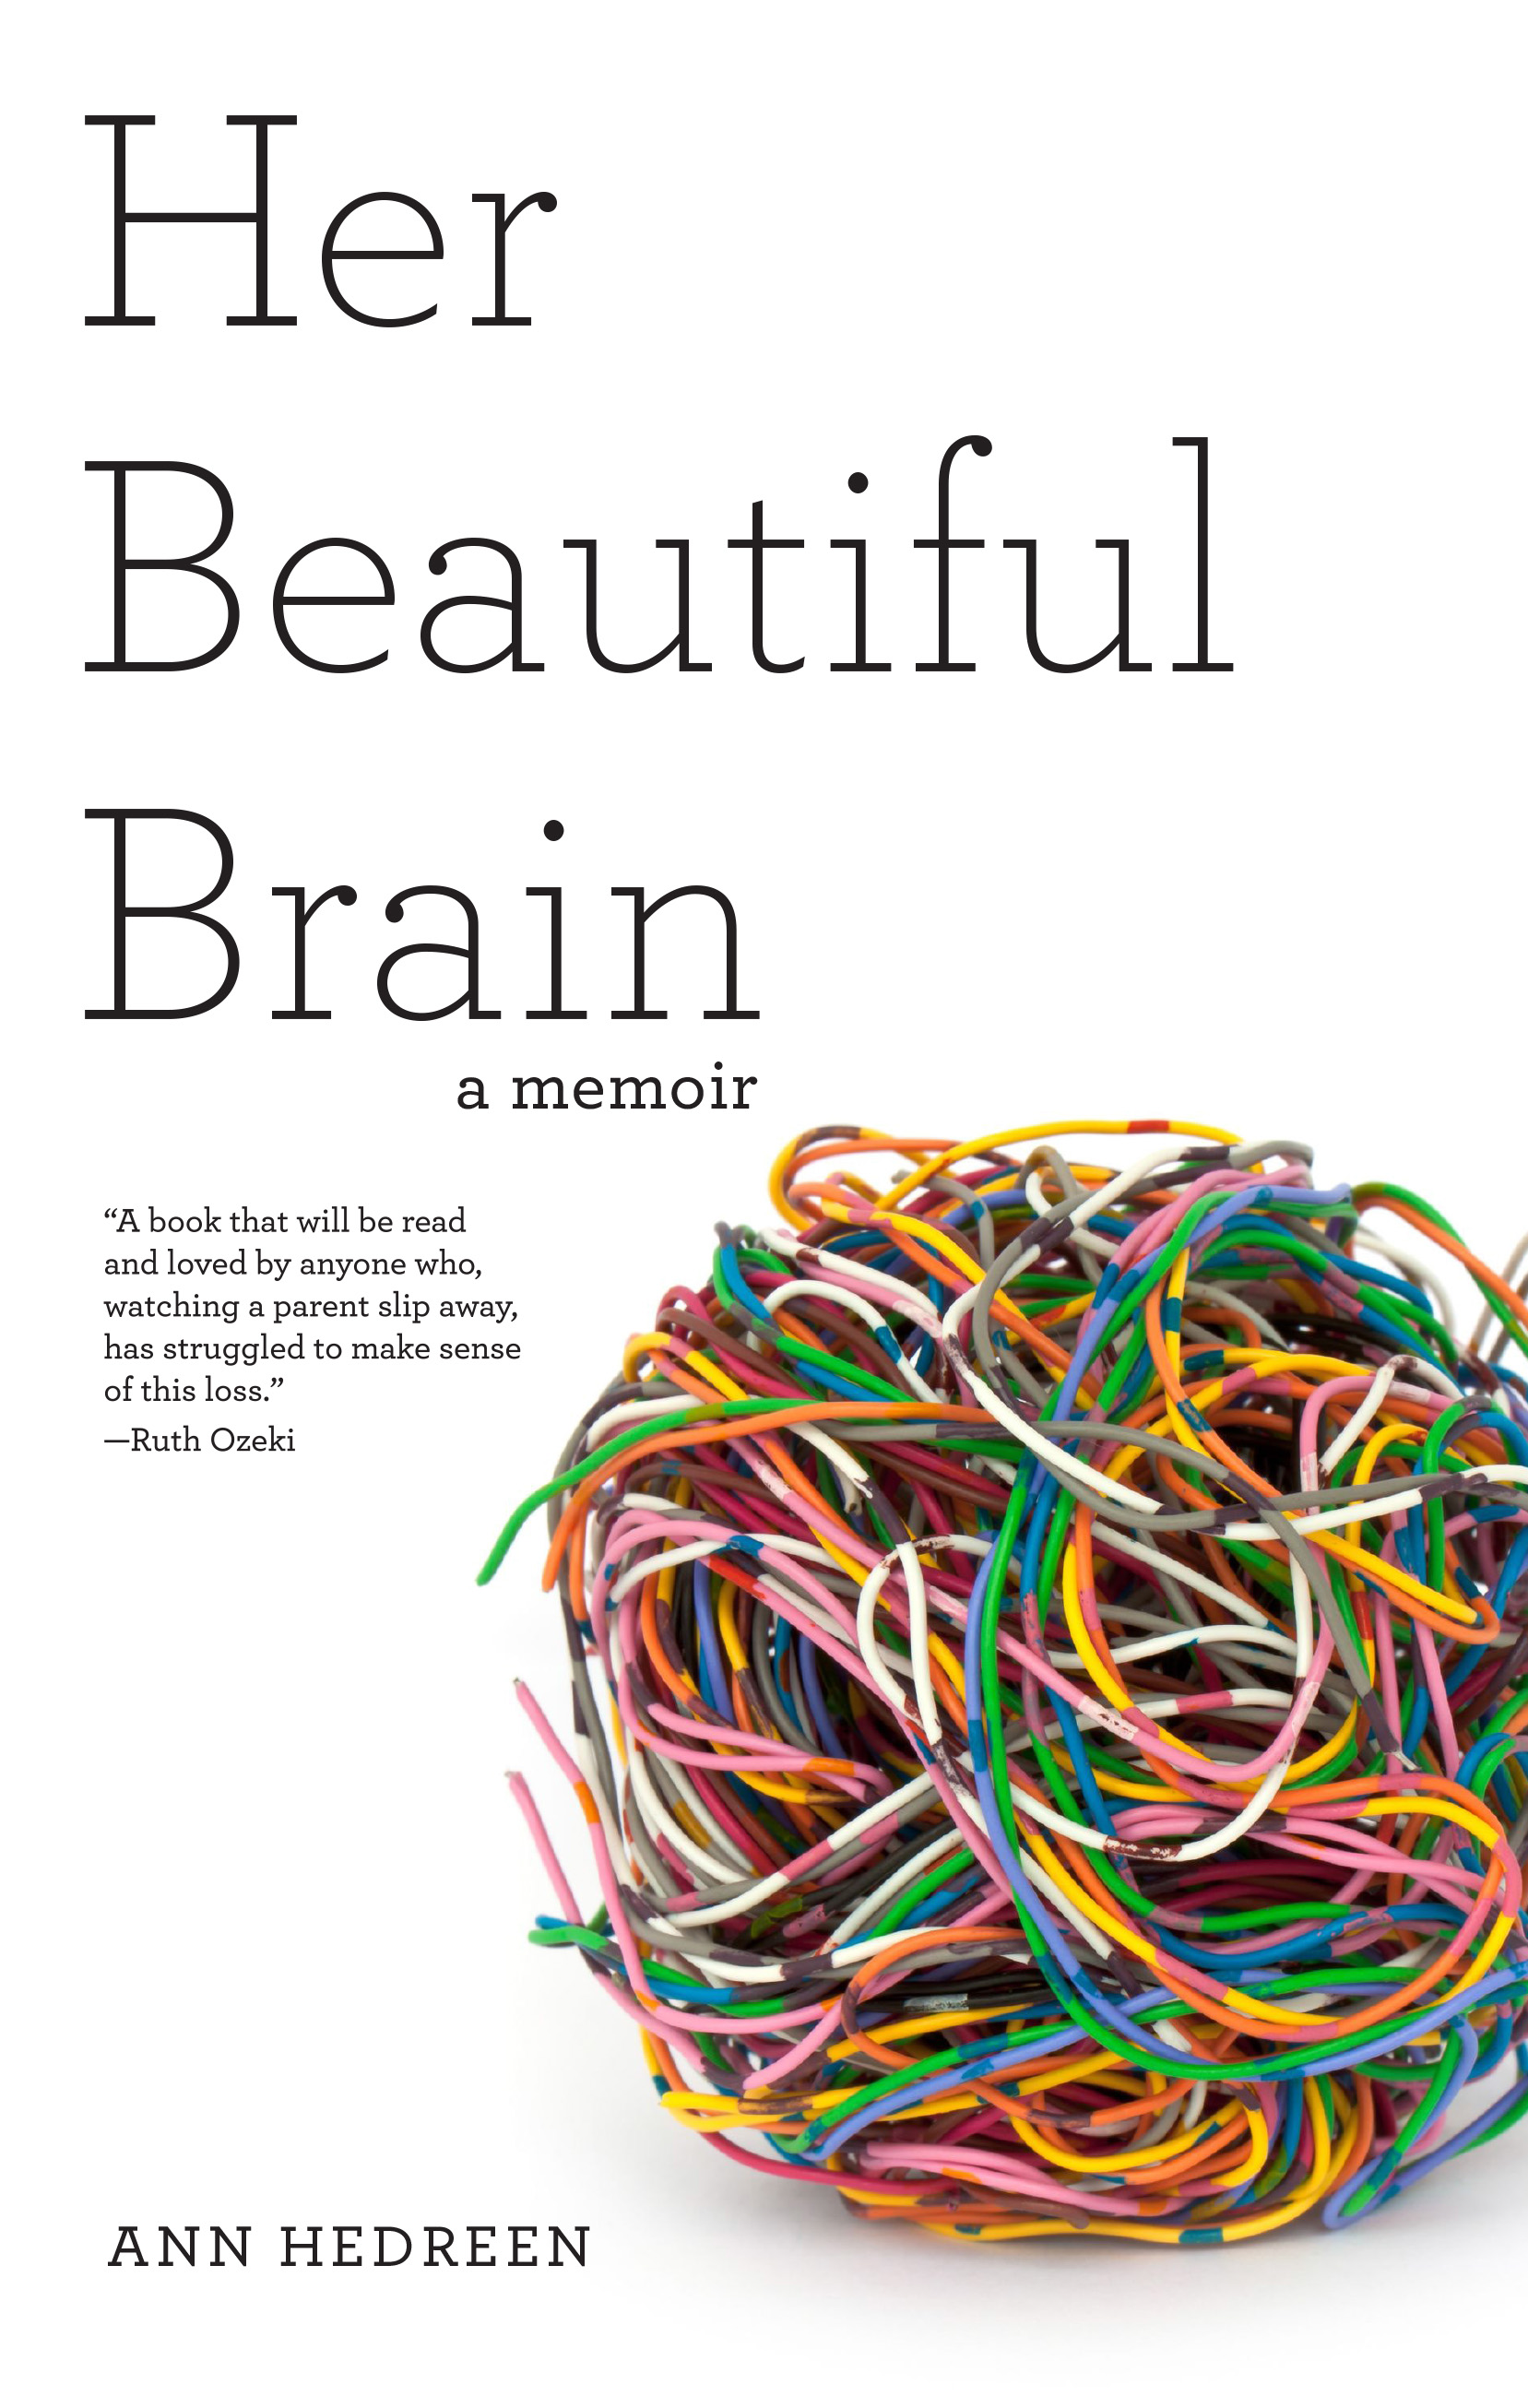 beauty or brains essay Beauty, brains, and brawn: hickman's essay perhaps can be viewed as carrying the crux of the matter regarding gender portrayal in children's literature.